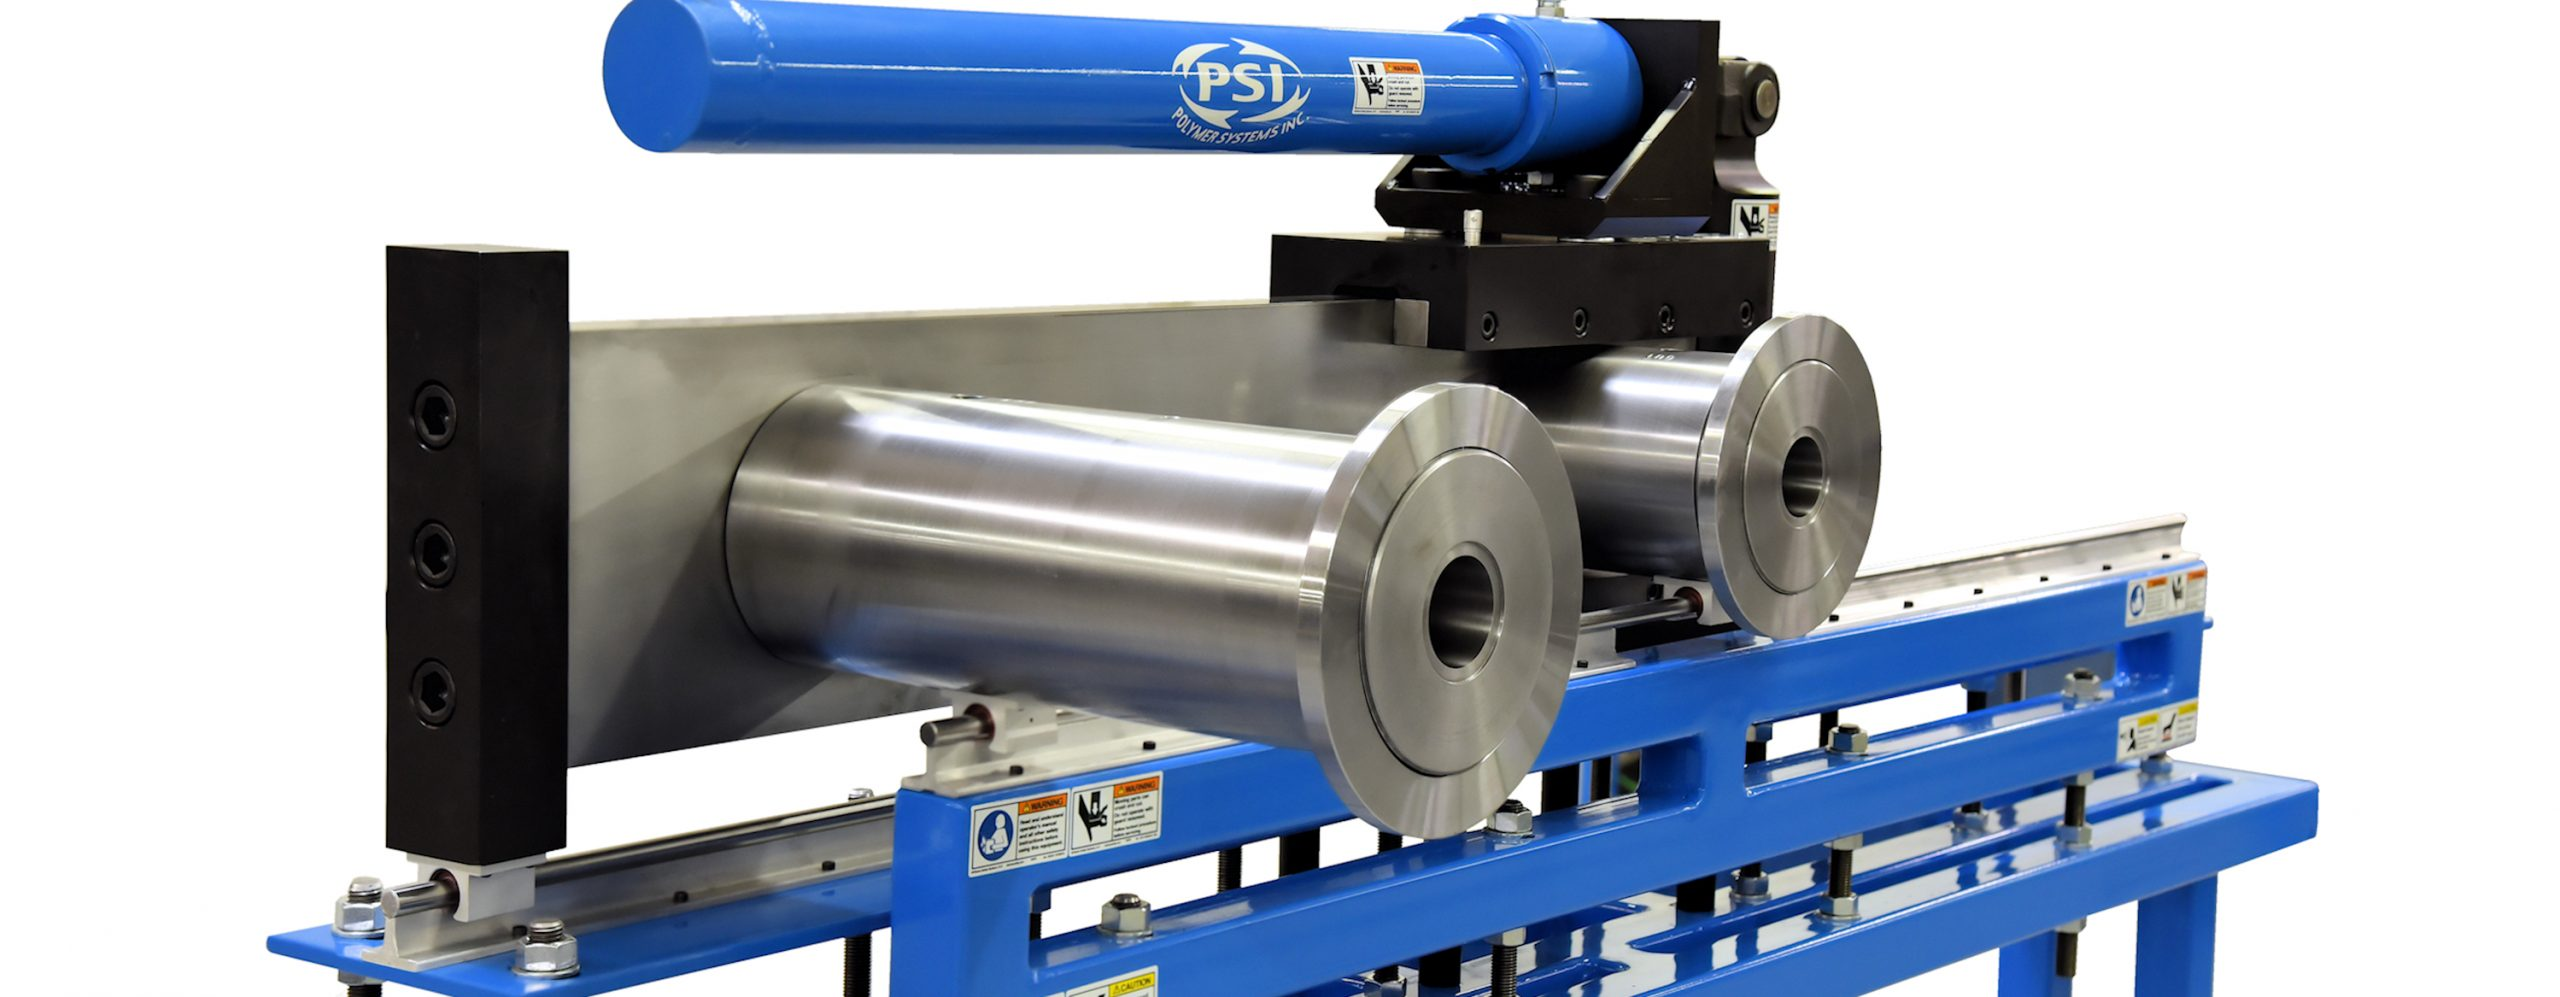 Extrusion Die Changer for Foam Sheet Applications